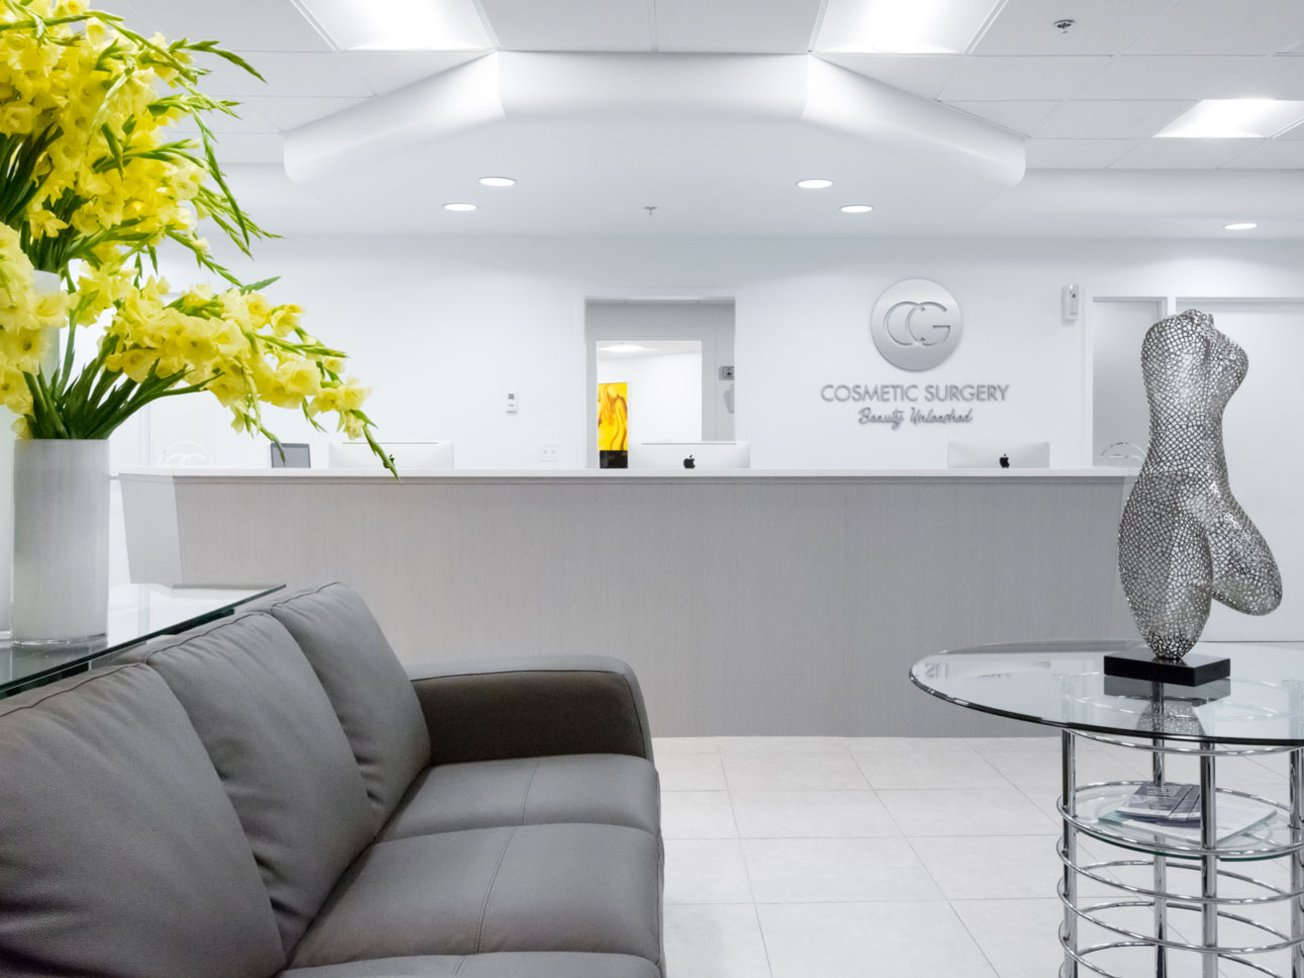 CG Cosmetic Surgery Office